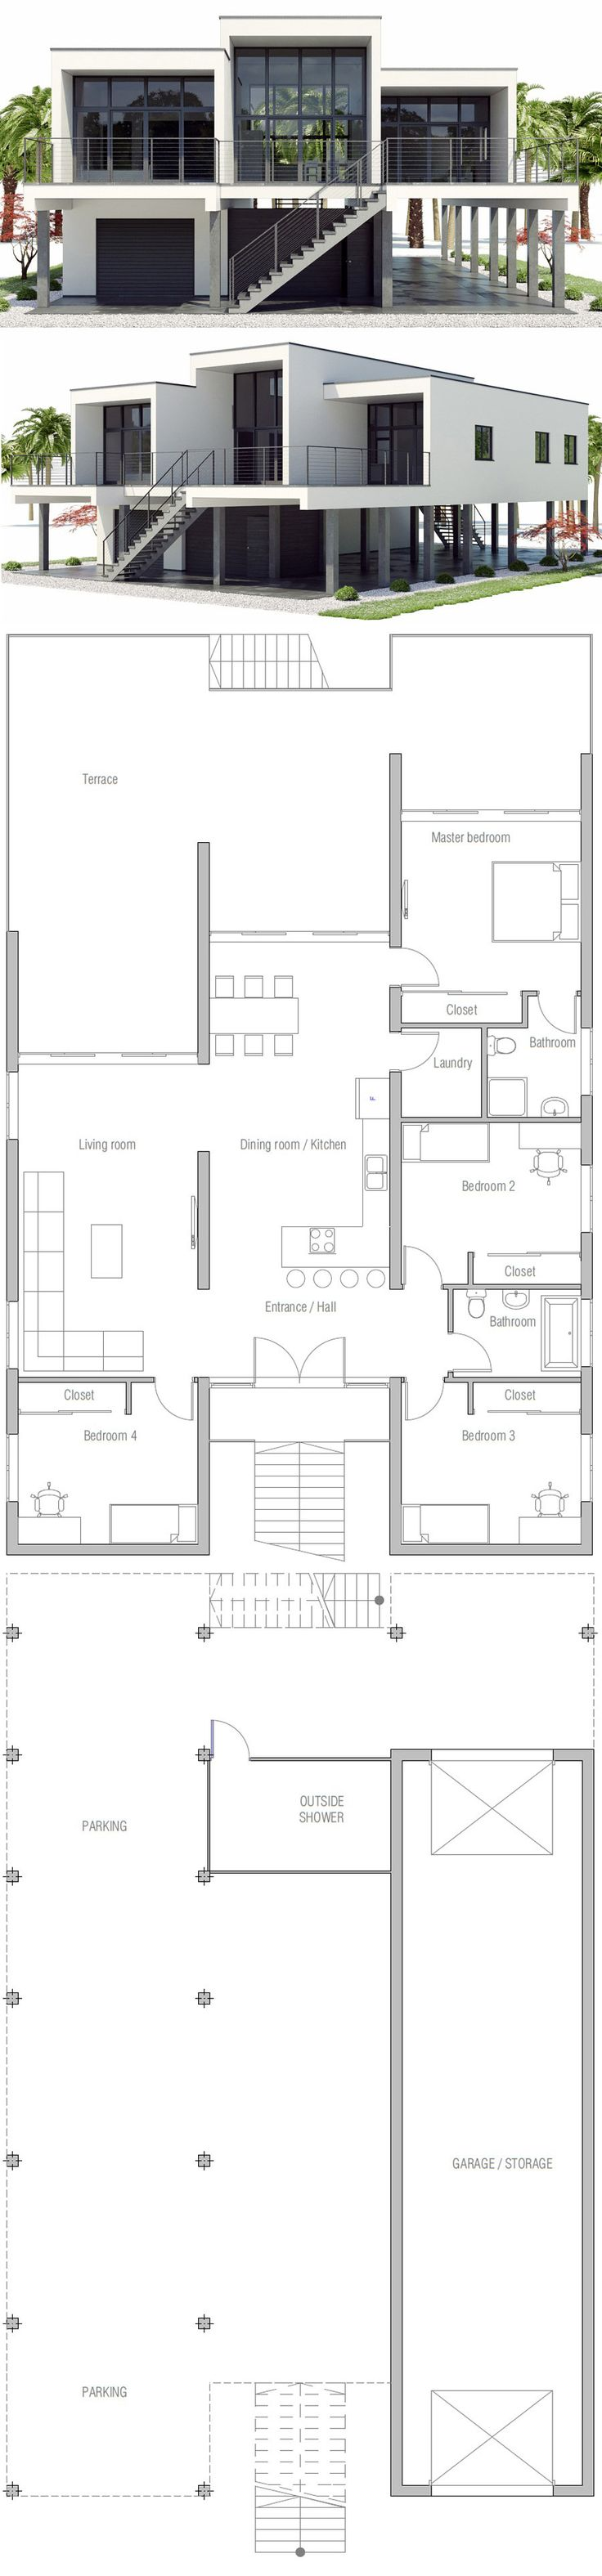 7331e48cedff475ff2fb7cd8fb0c3368 Top Result 52 Elegant House Plans with Finished Basement